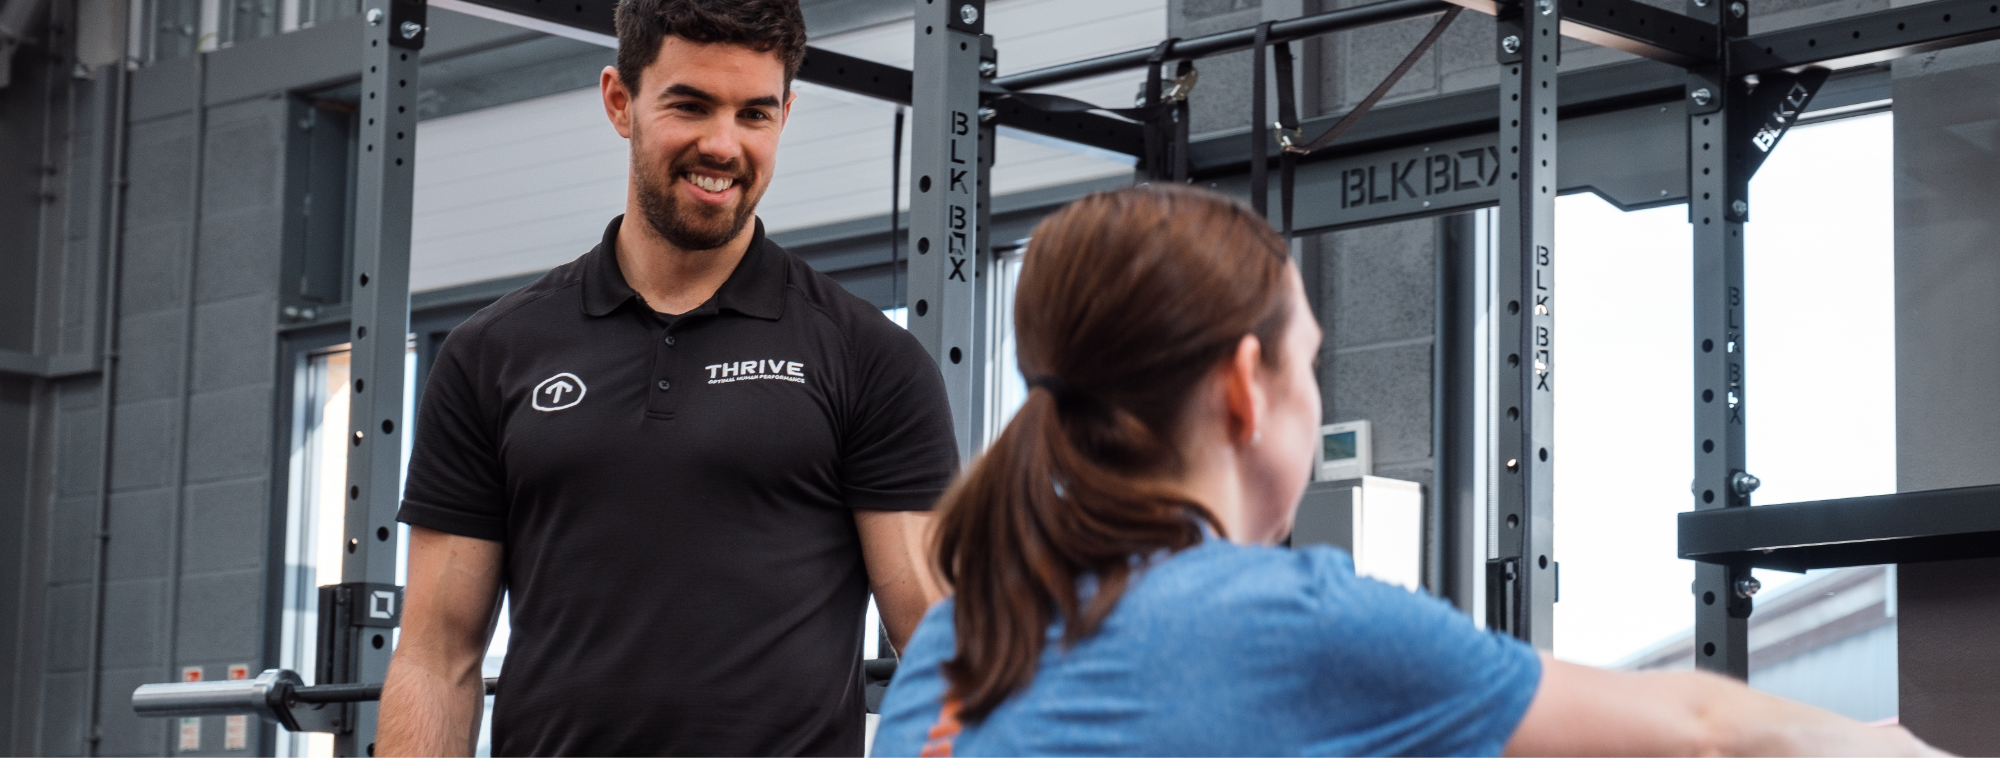 thrive personal trainers